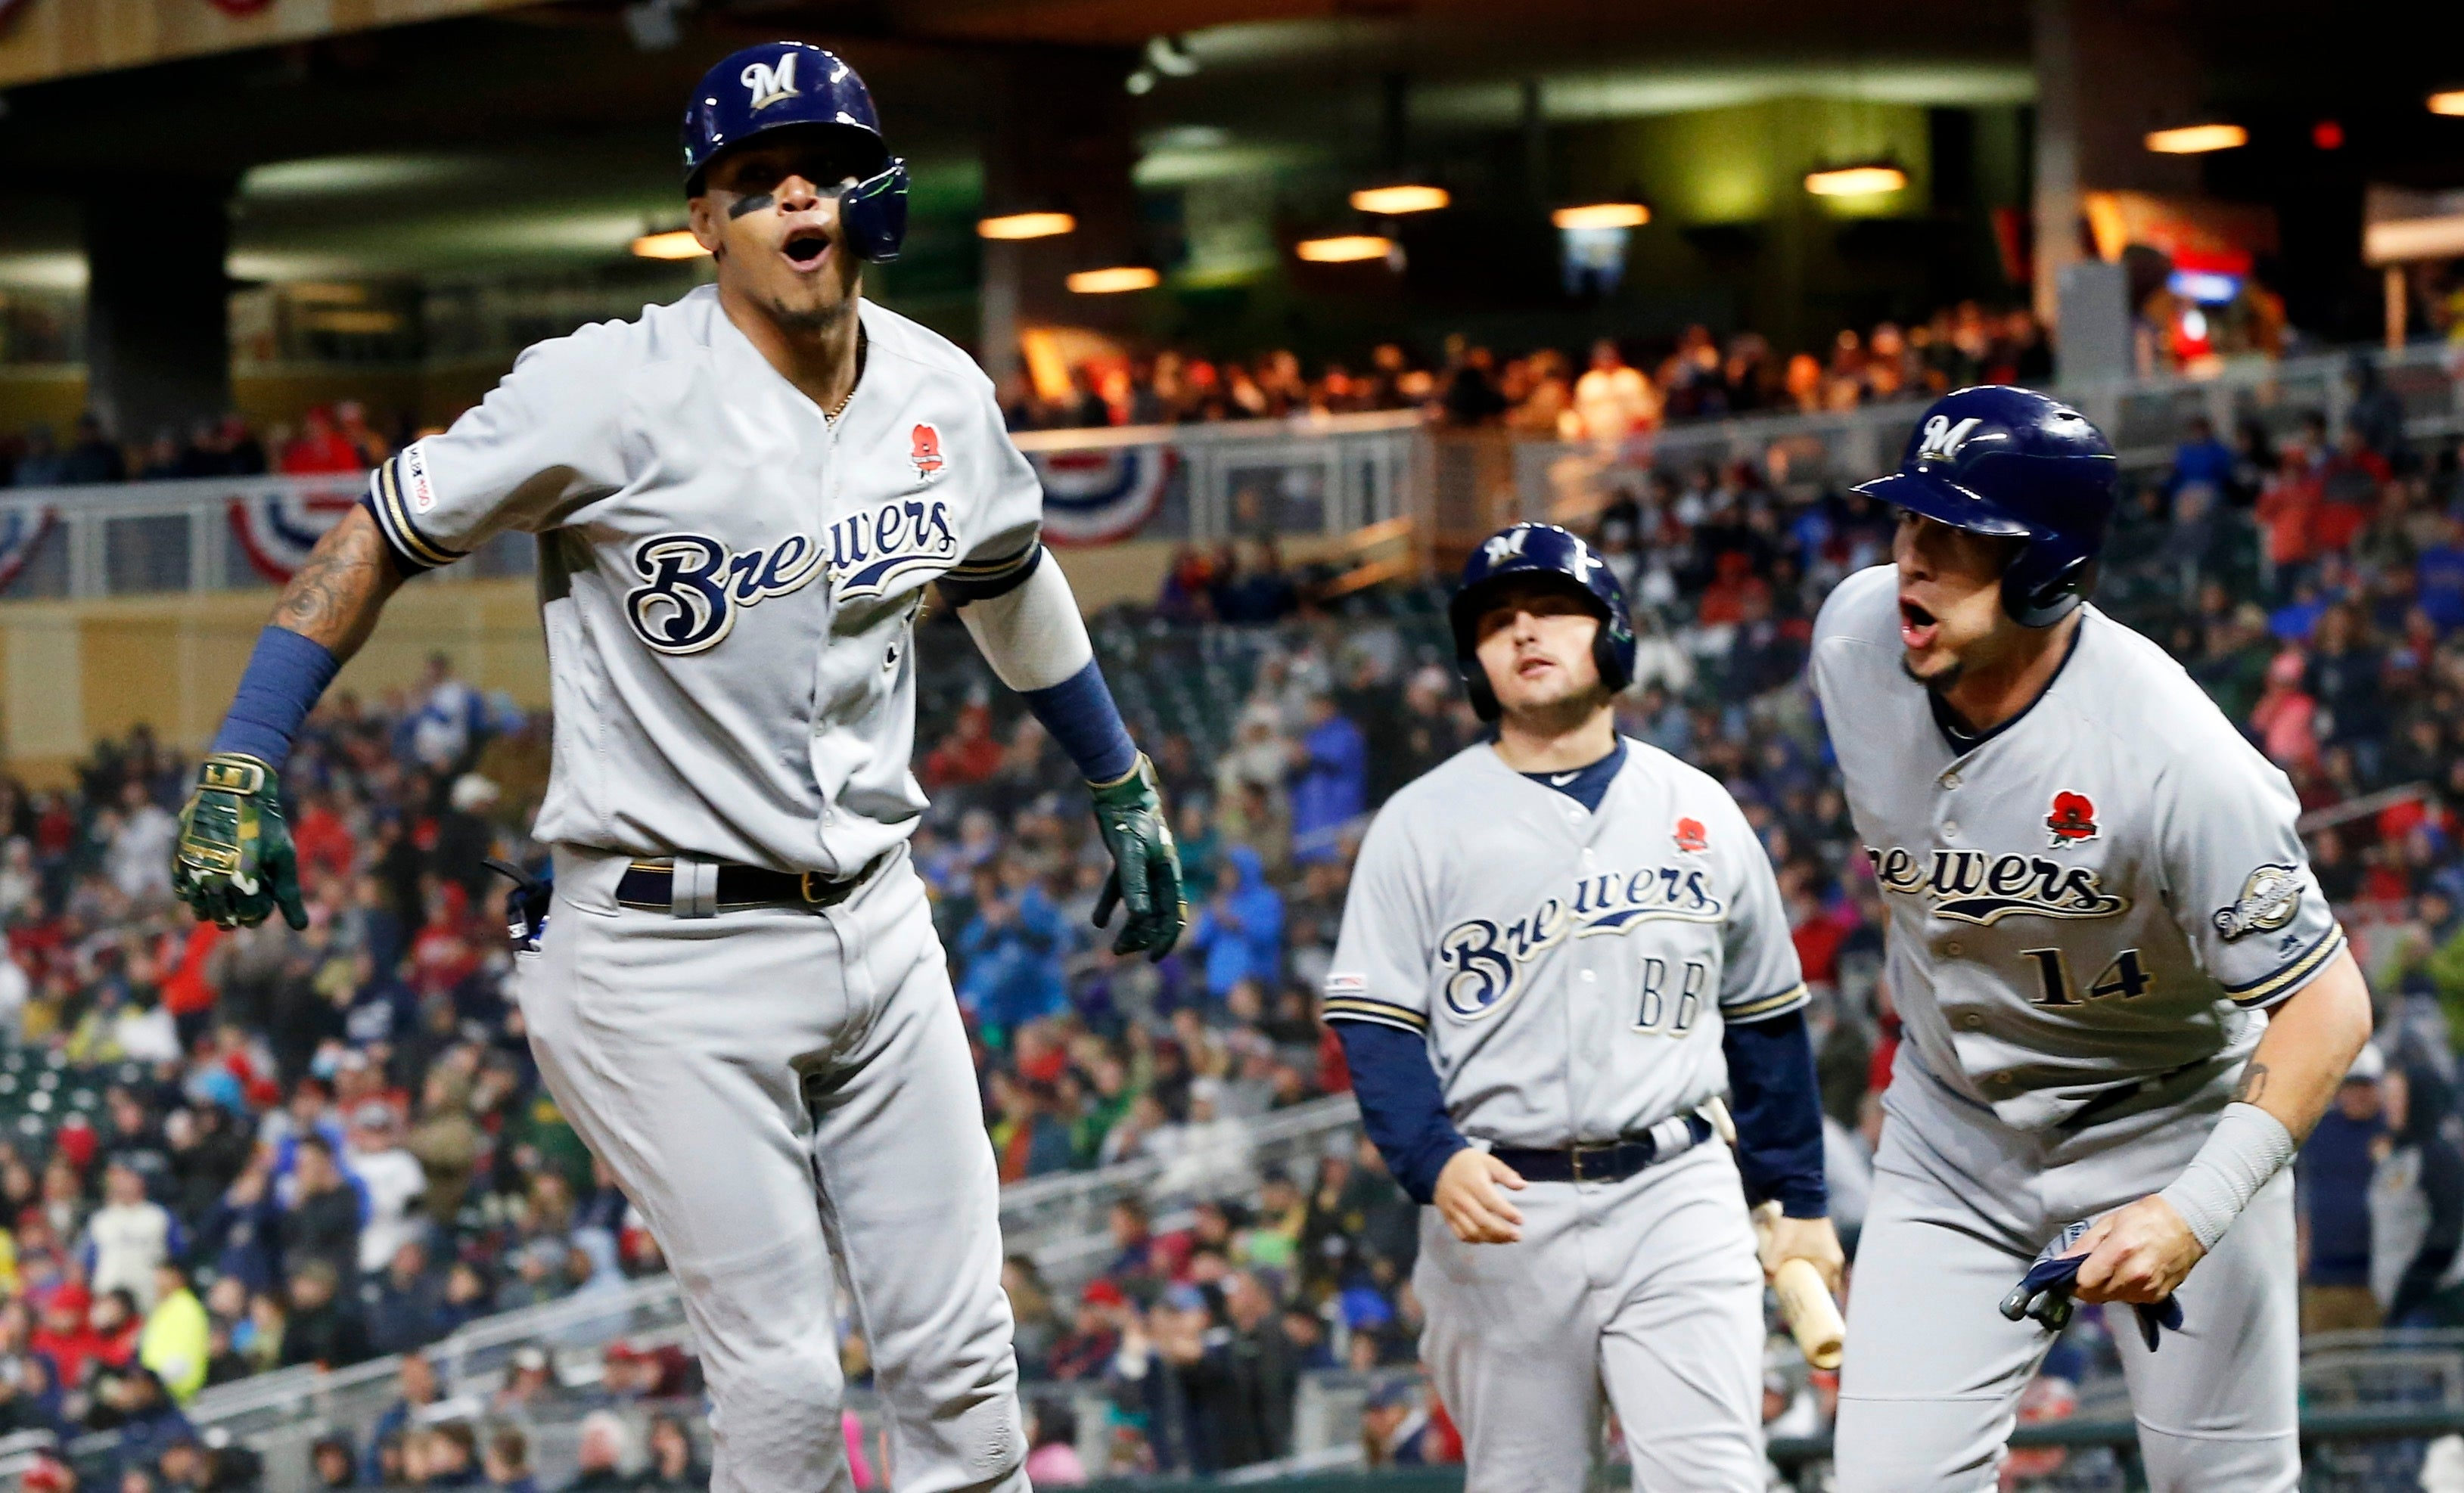 fa89ad2b682 Arcia s 8th inning home run lifts Brewers past Twins 5-4